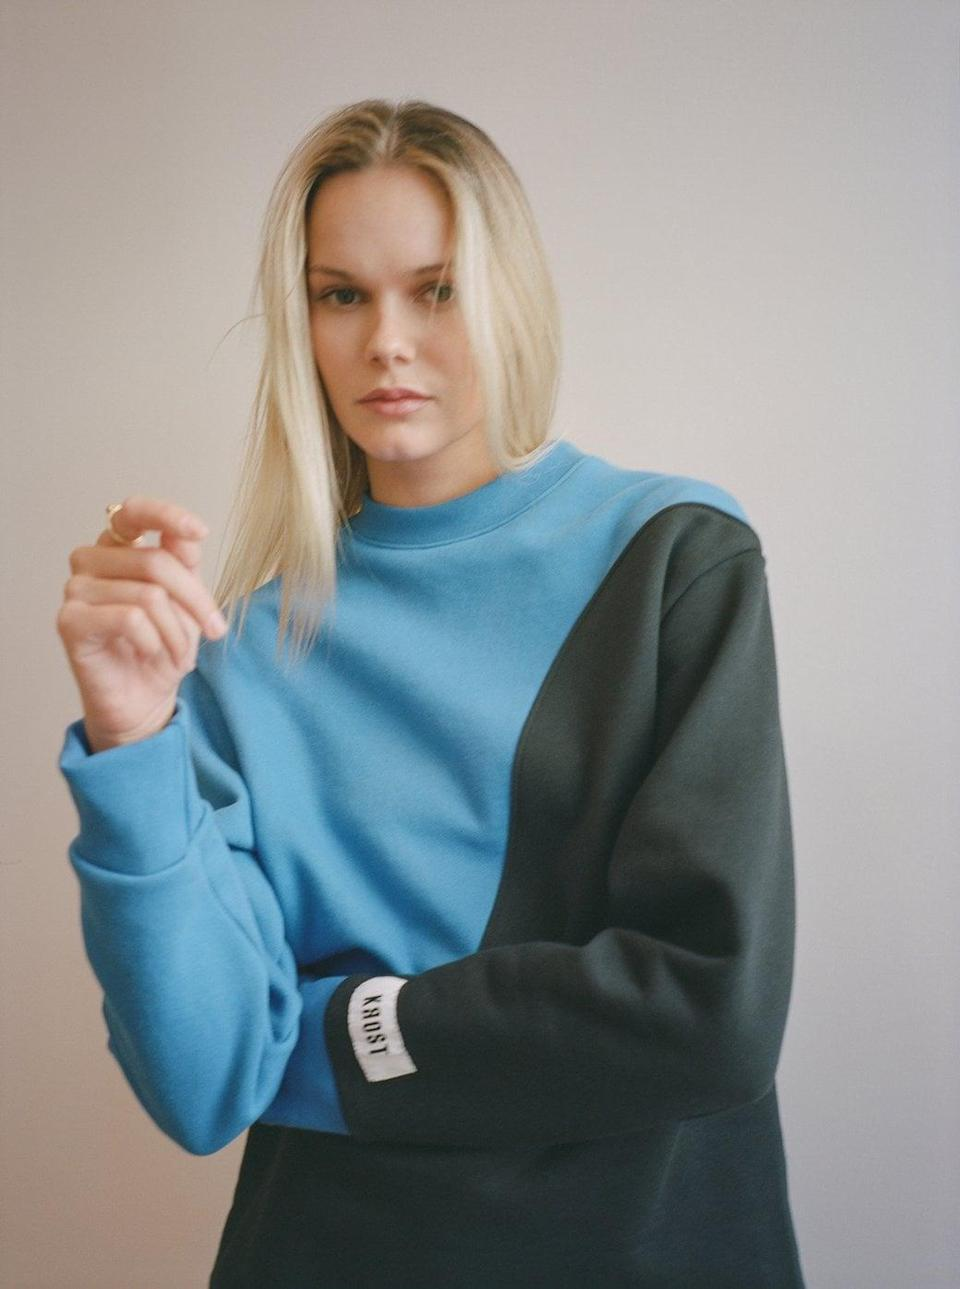 <p>KROST's latest collection features this crewneck which is crafted with 100% durable fleece. The line is created by upcycled fabris and is sourced, milled, designed &amp; produced in New York.</p> <p><strong>What We'd Buy</strong>: <span>KROST New York Upcycle Fleece Crewneck</span> ($118)</p>